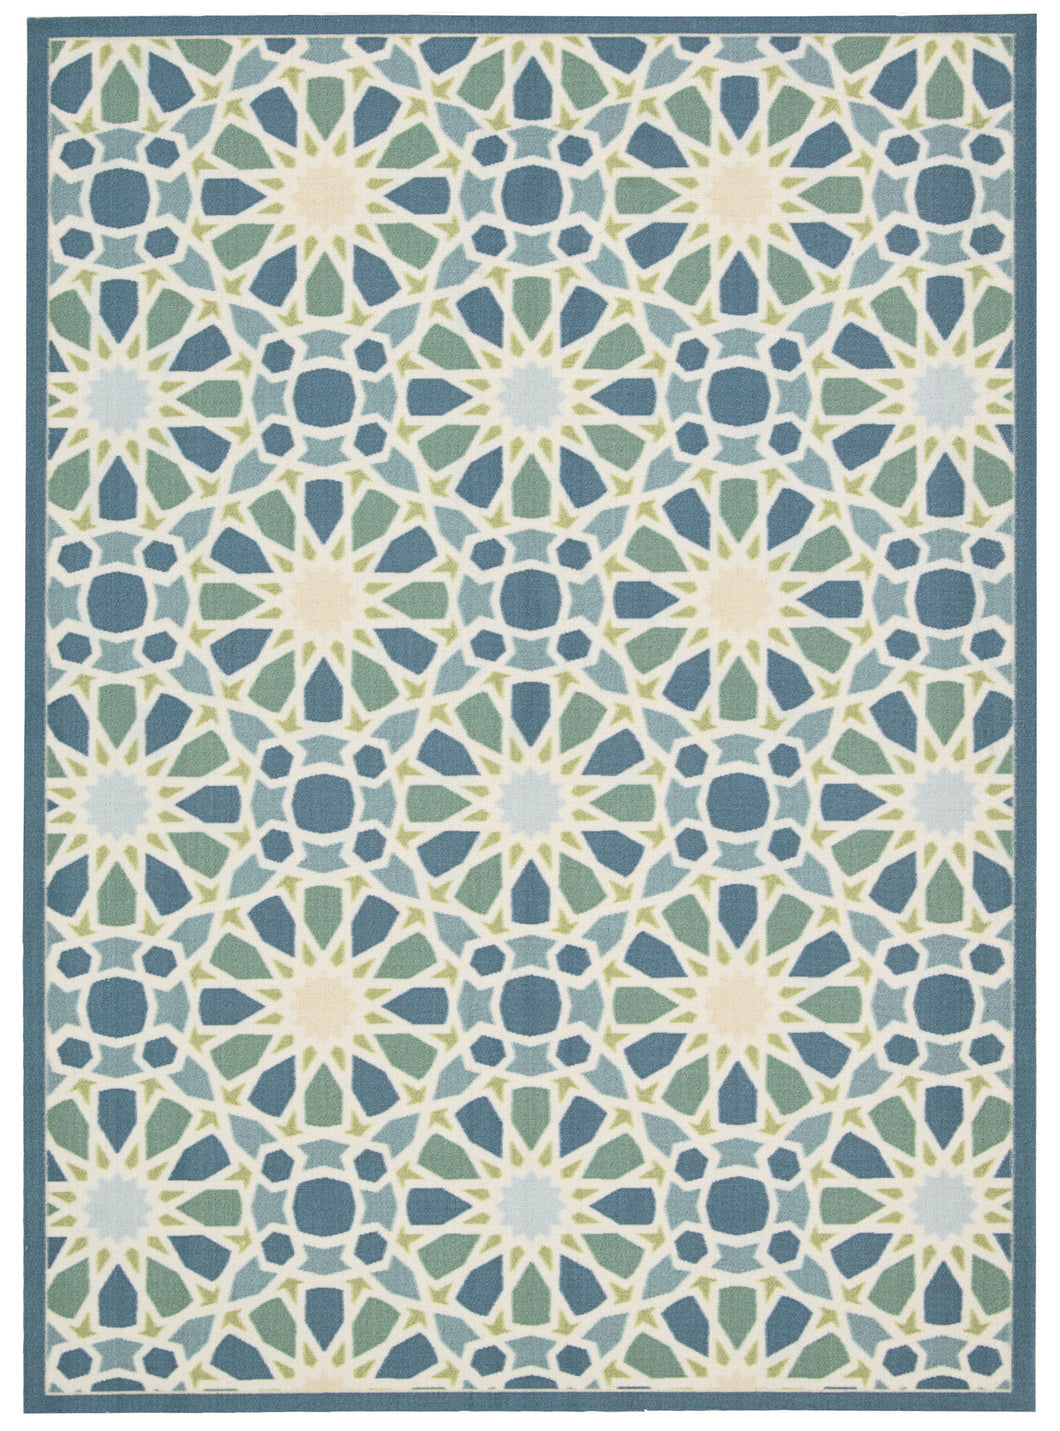 Waverly Sun & Shade Starry Eyed Porcelain Area Rug By Nourison SND29 PRCLN